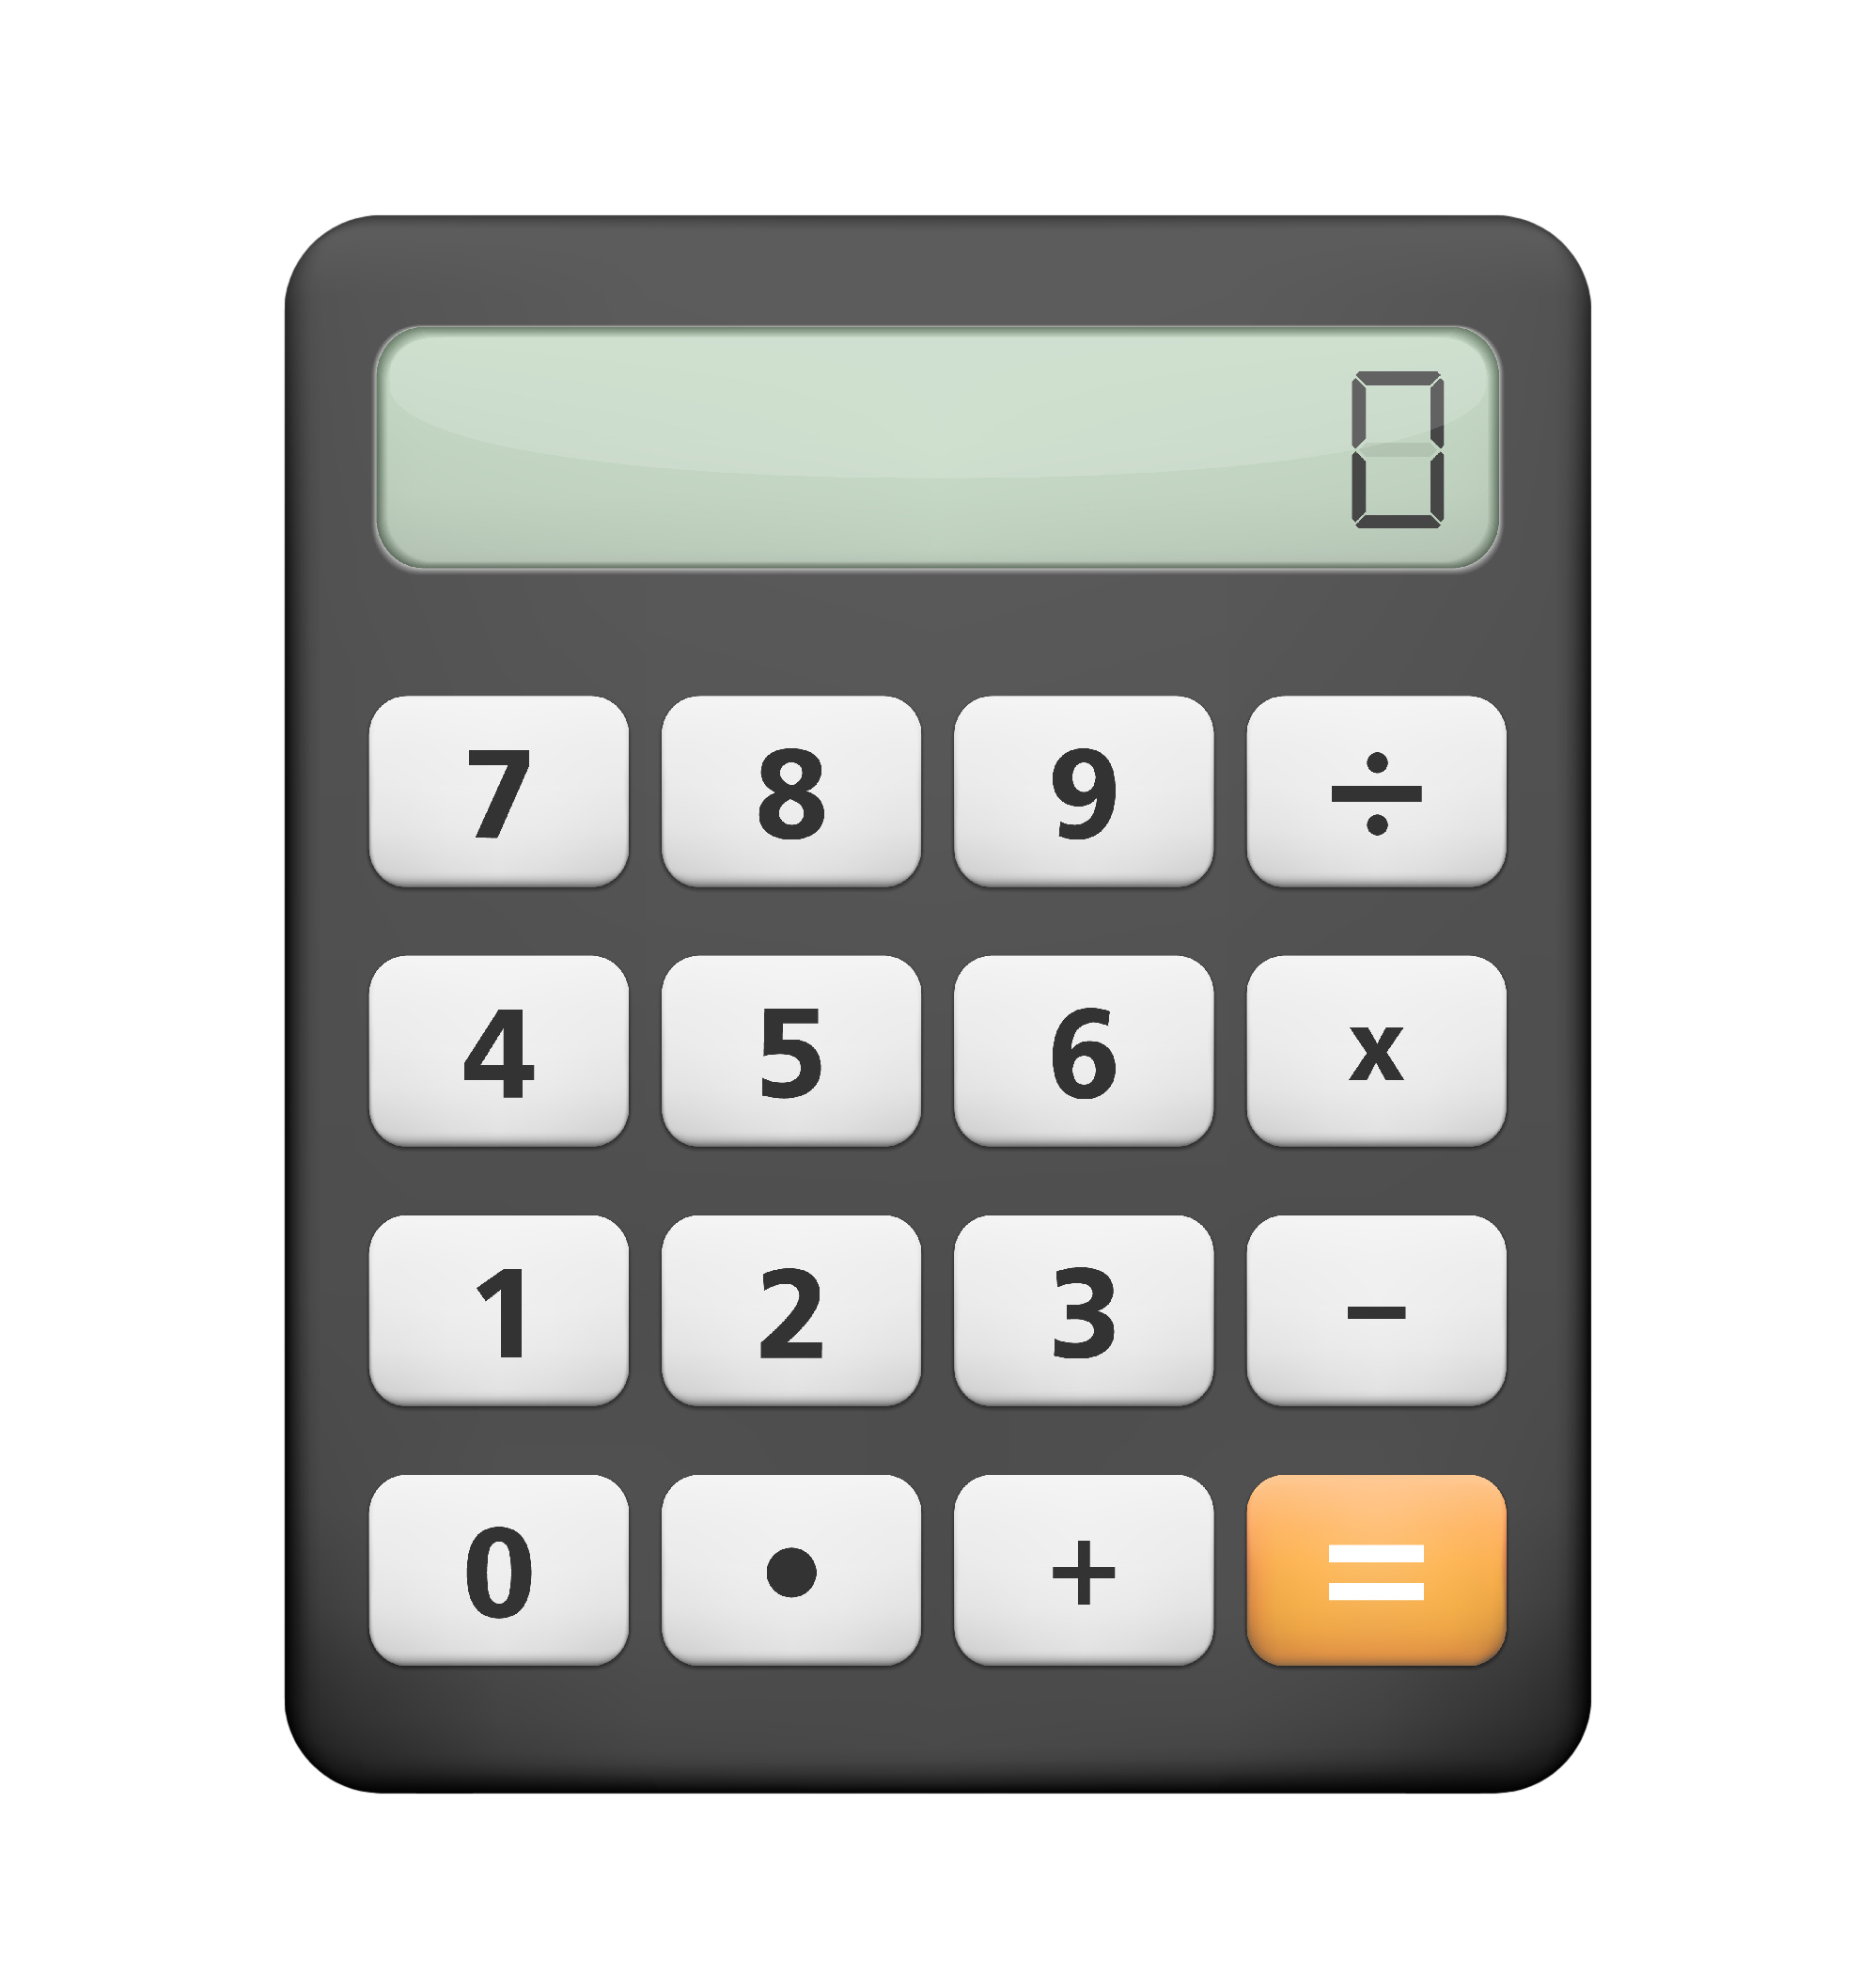 Cash Flow Calculator - Budgeting and tracking your income and expenses gives you a strong sense of where your money goes and can help you reach your financial goals.